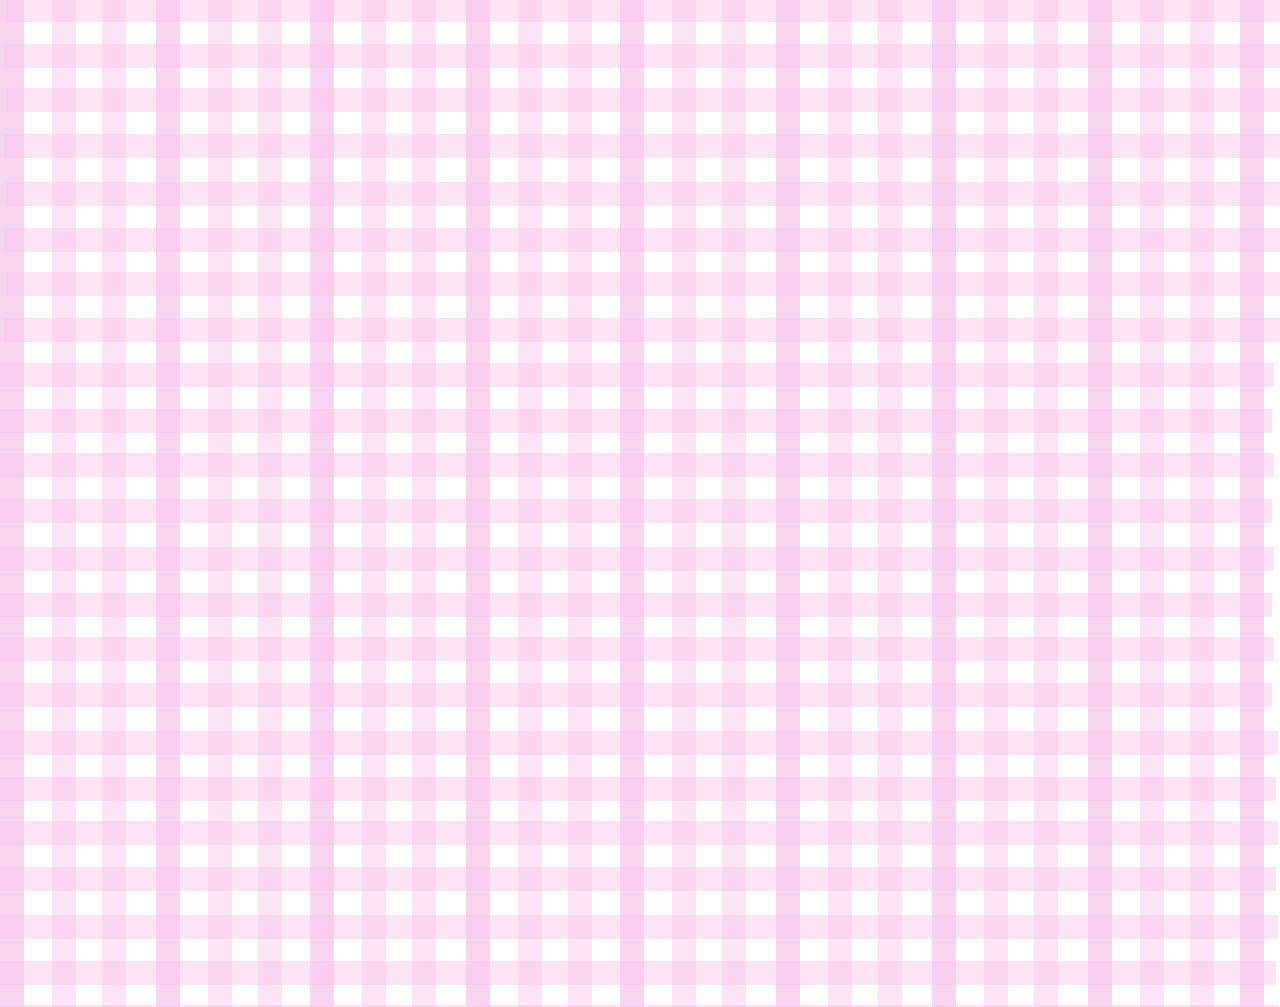 pink baby backgrounds related keywords suggestions